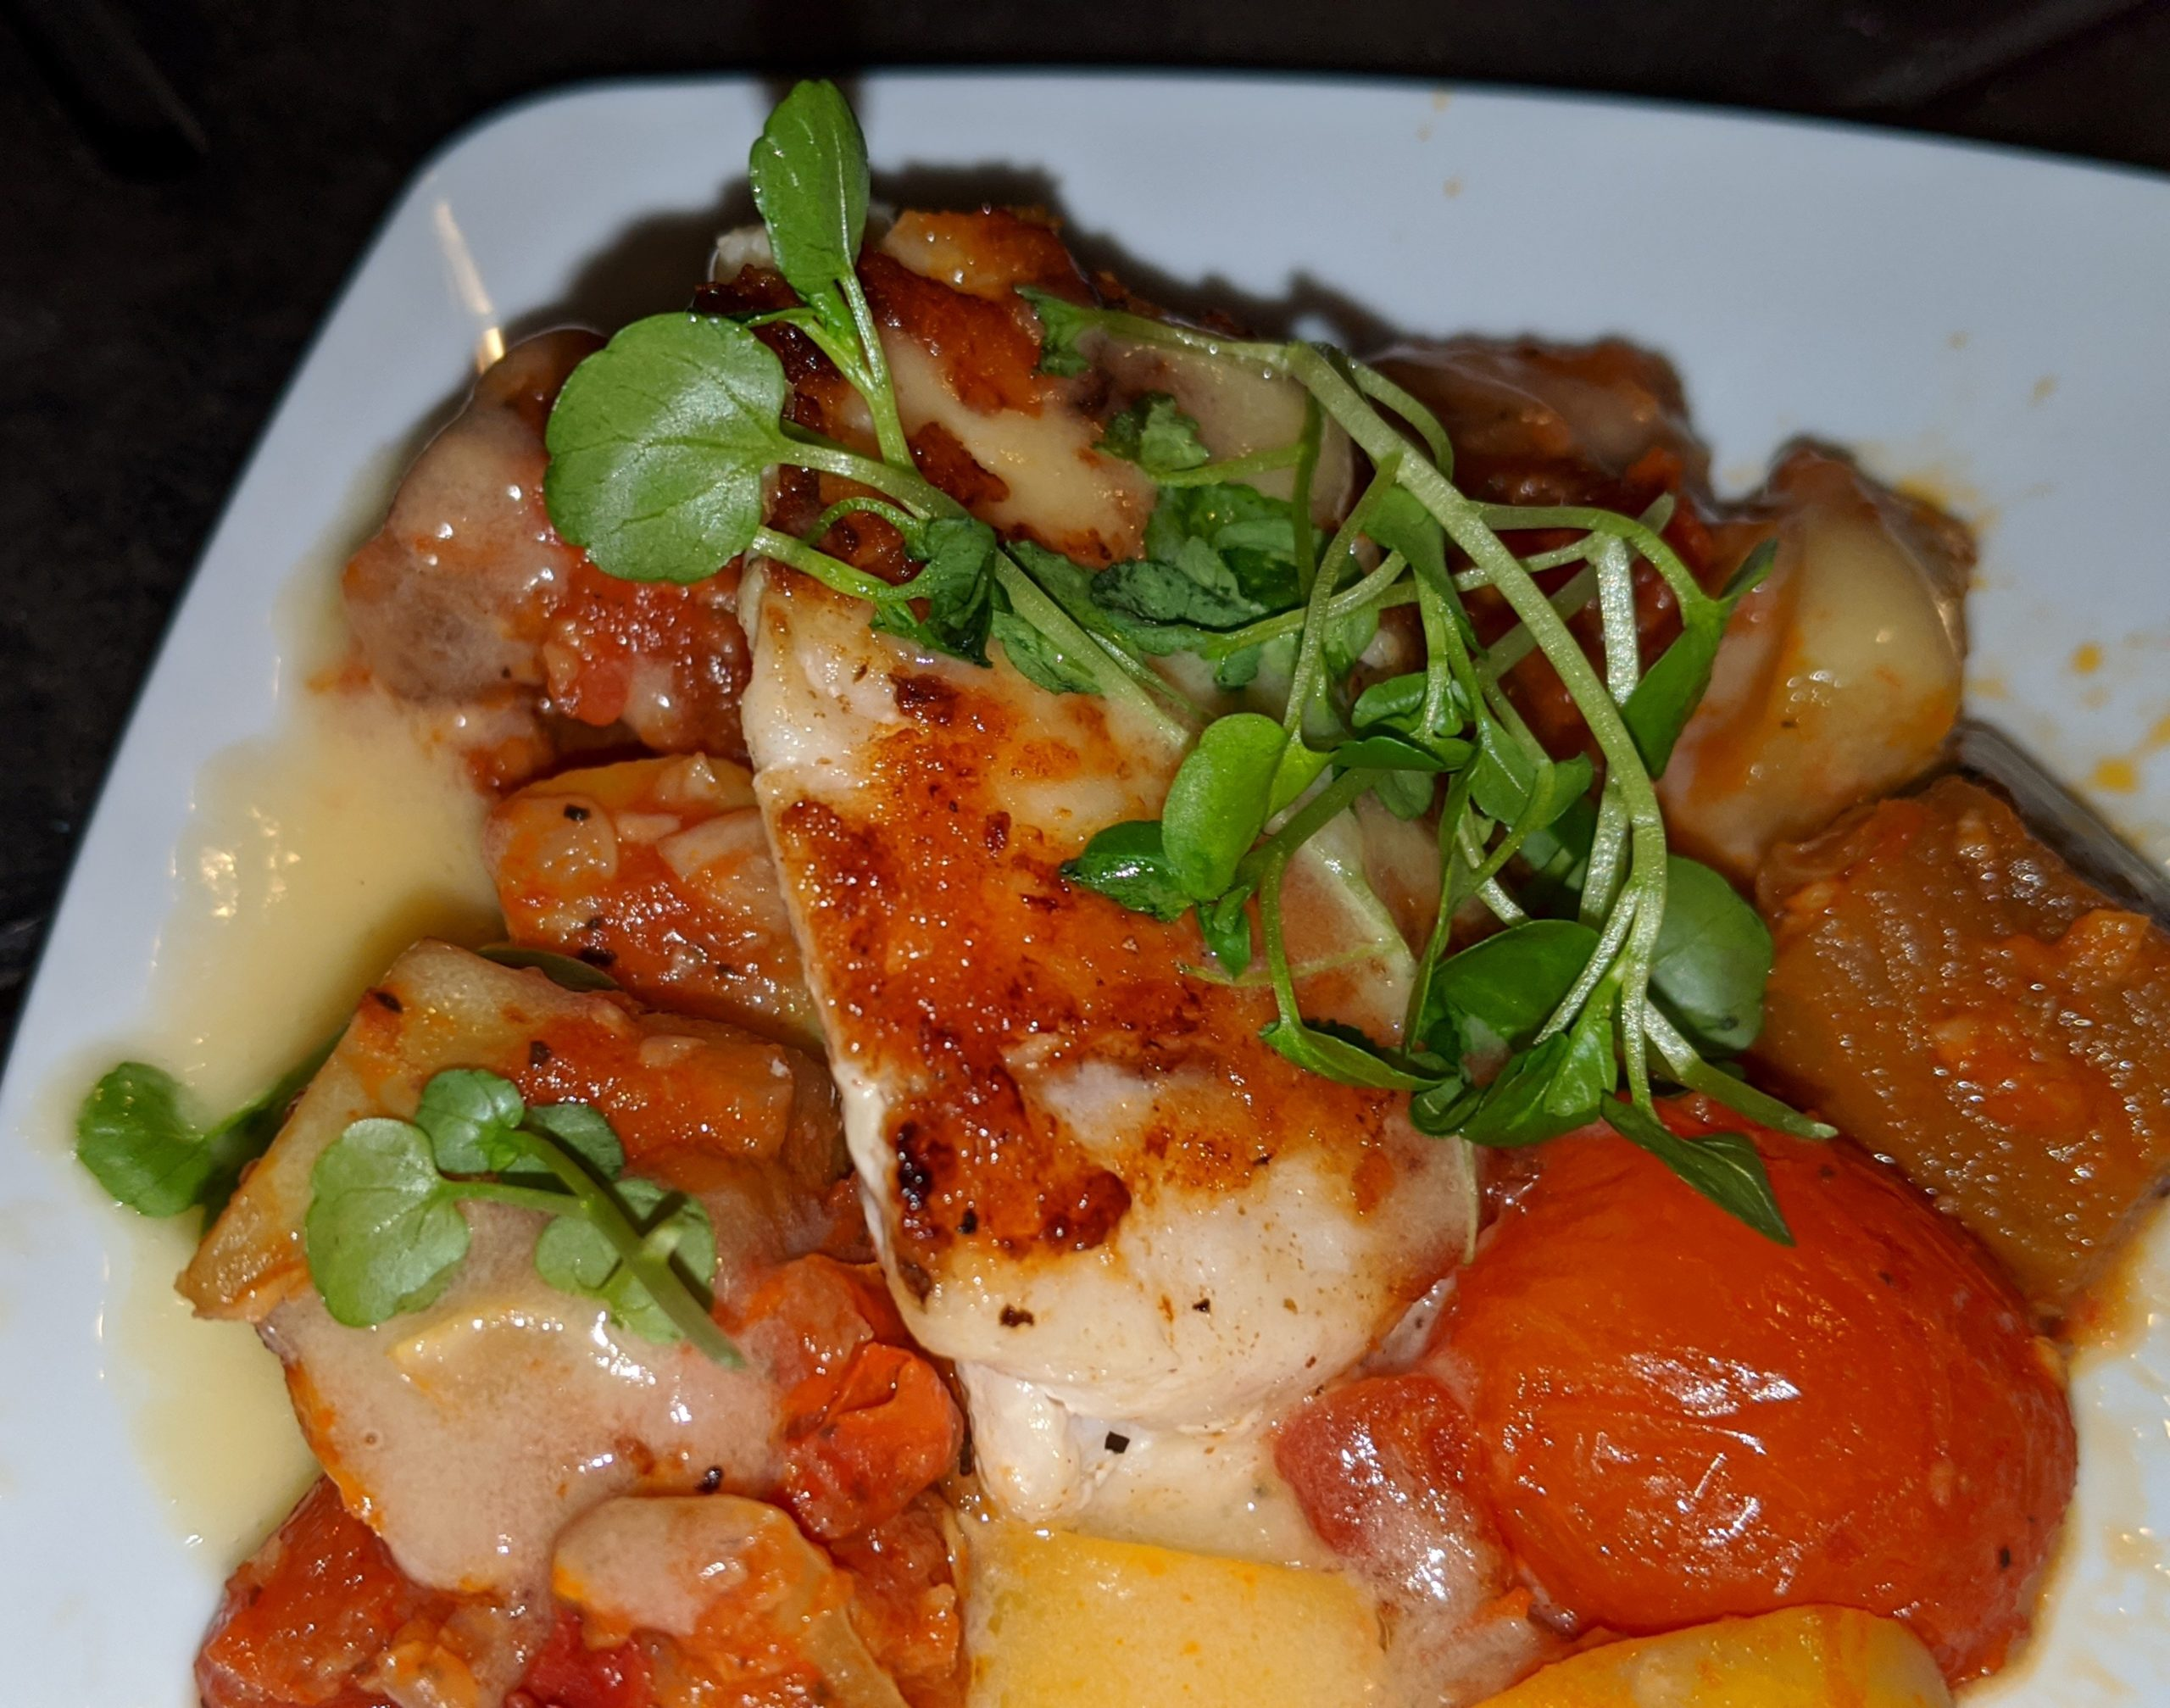 Seared Corvina with braised Ratatouille and Lemon-Thyme Beurre Blanc from Cuisine Classique in Germany